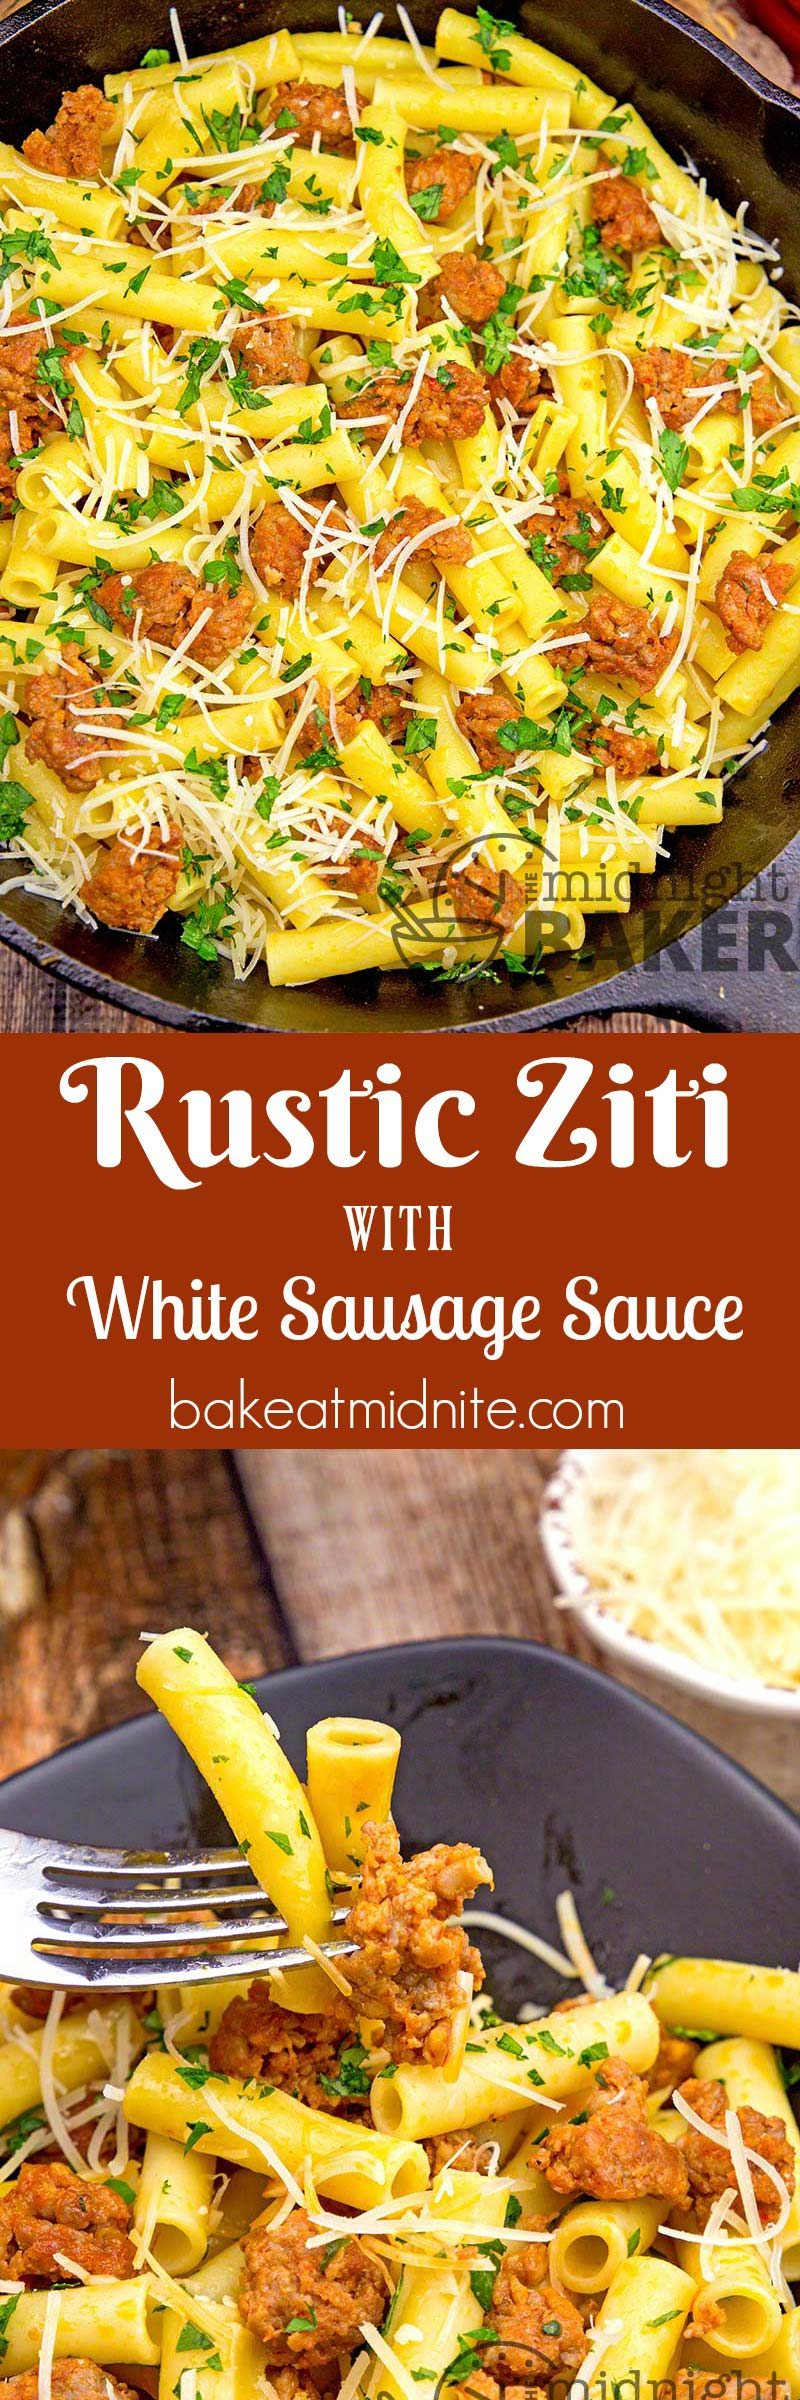 An easy peasy ziti pasta meal with a flavorful white sausage sauce